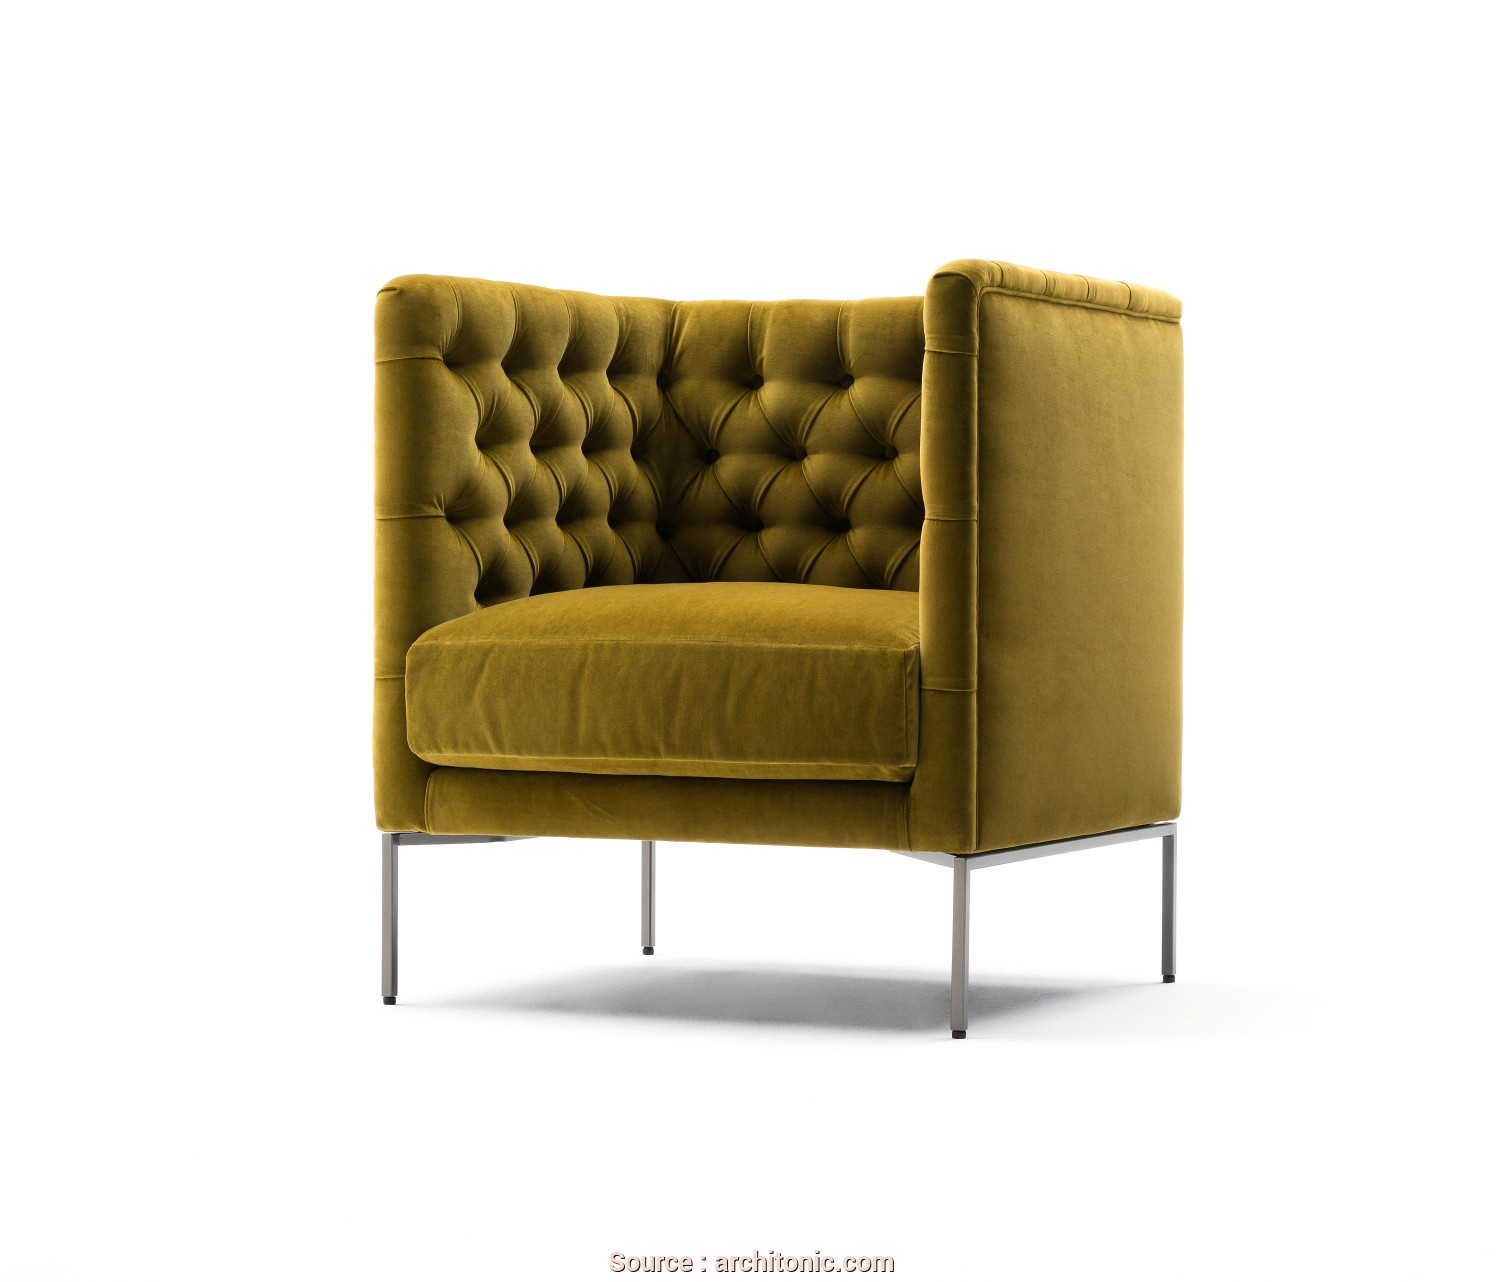 4 Divani Flour, Incredibile LIPP ARMCHAIR, Armchairs From Living Divani, Architonic